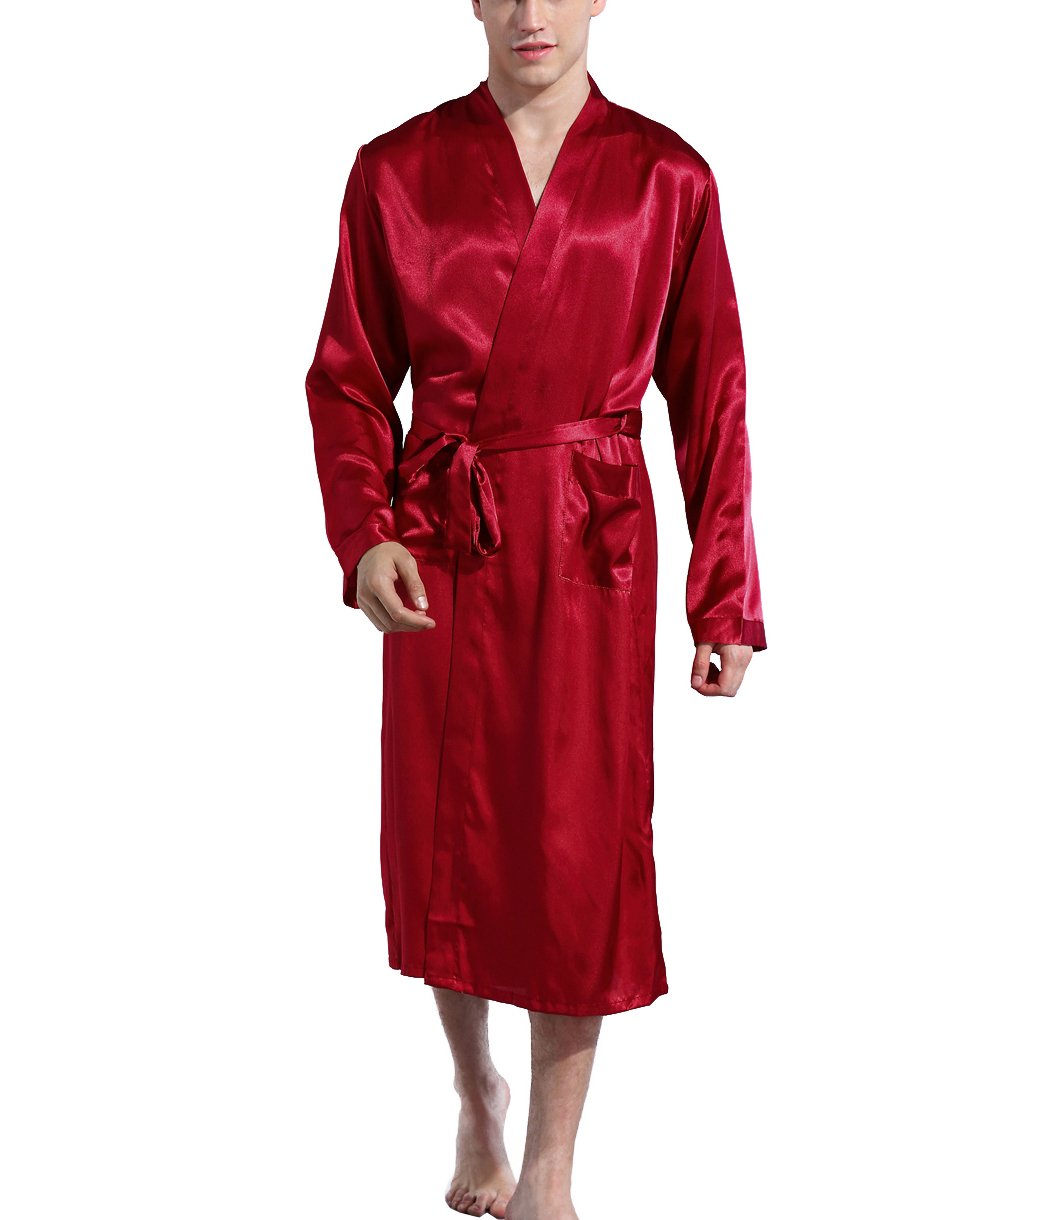 Admireme Men's Satin Kimono Robe Spa Bathrobes Sleepwear Long Bathrobe